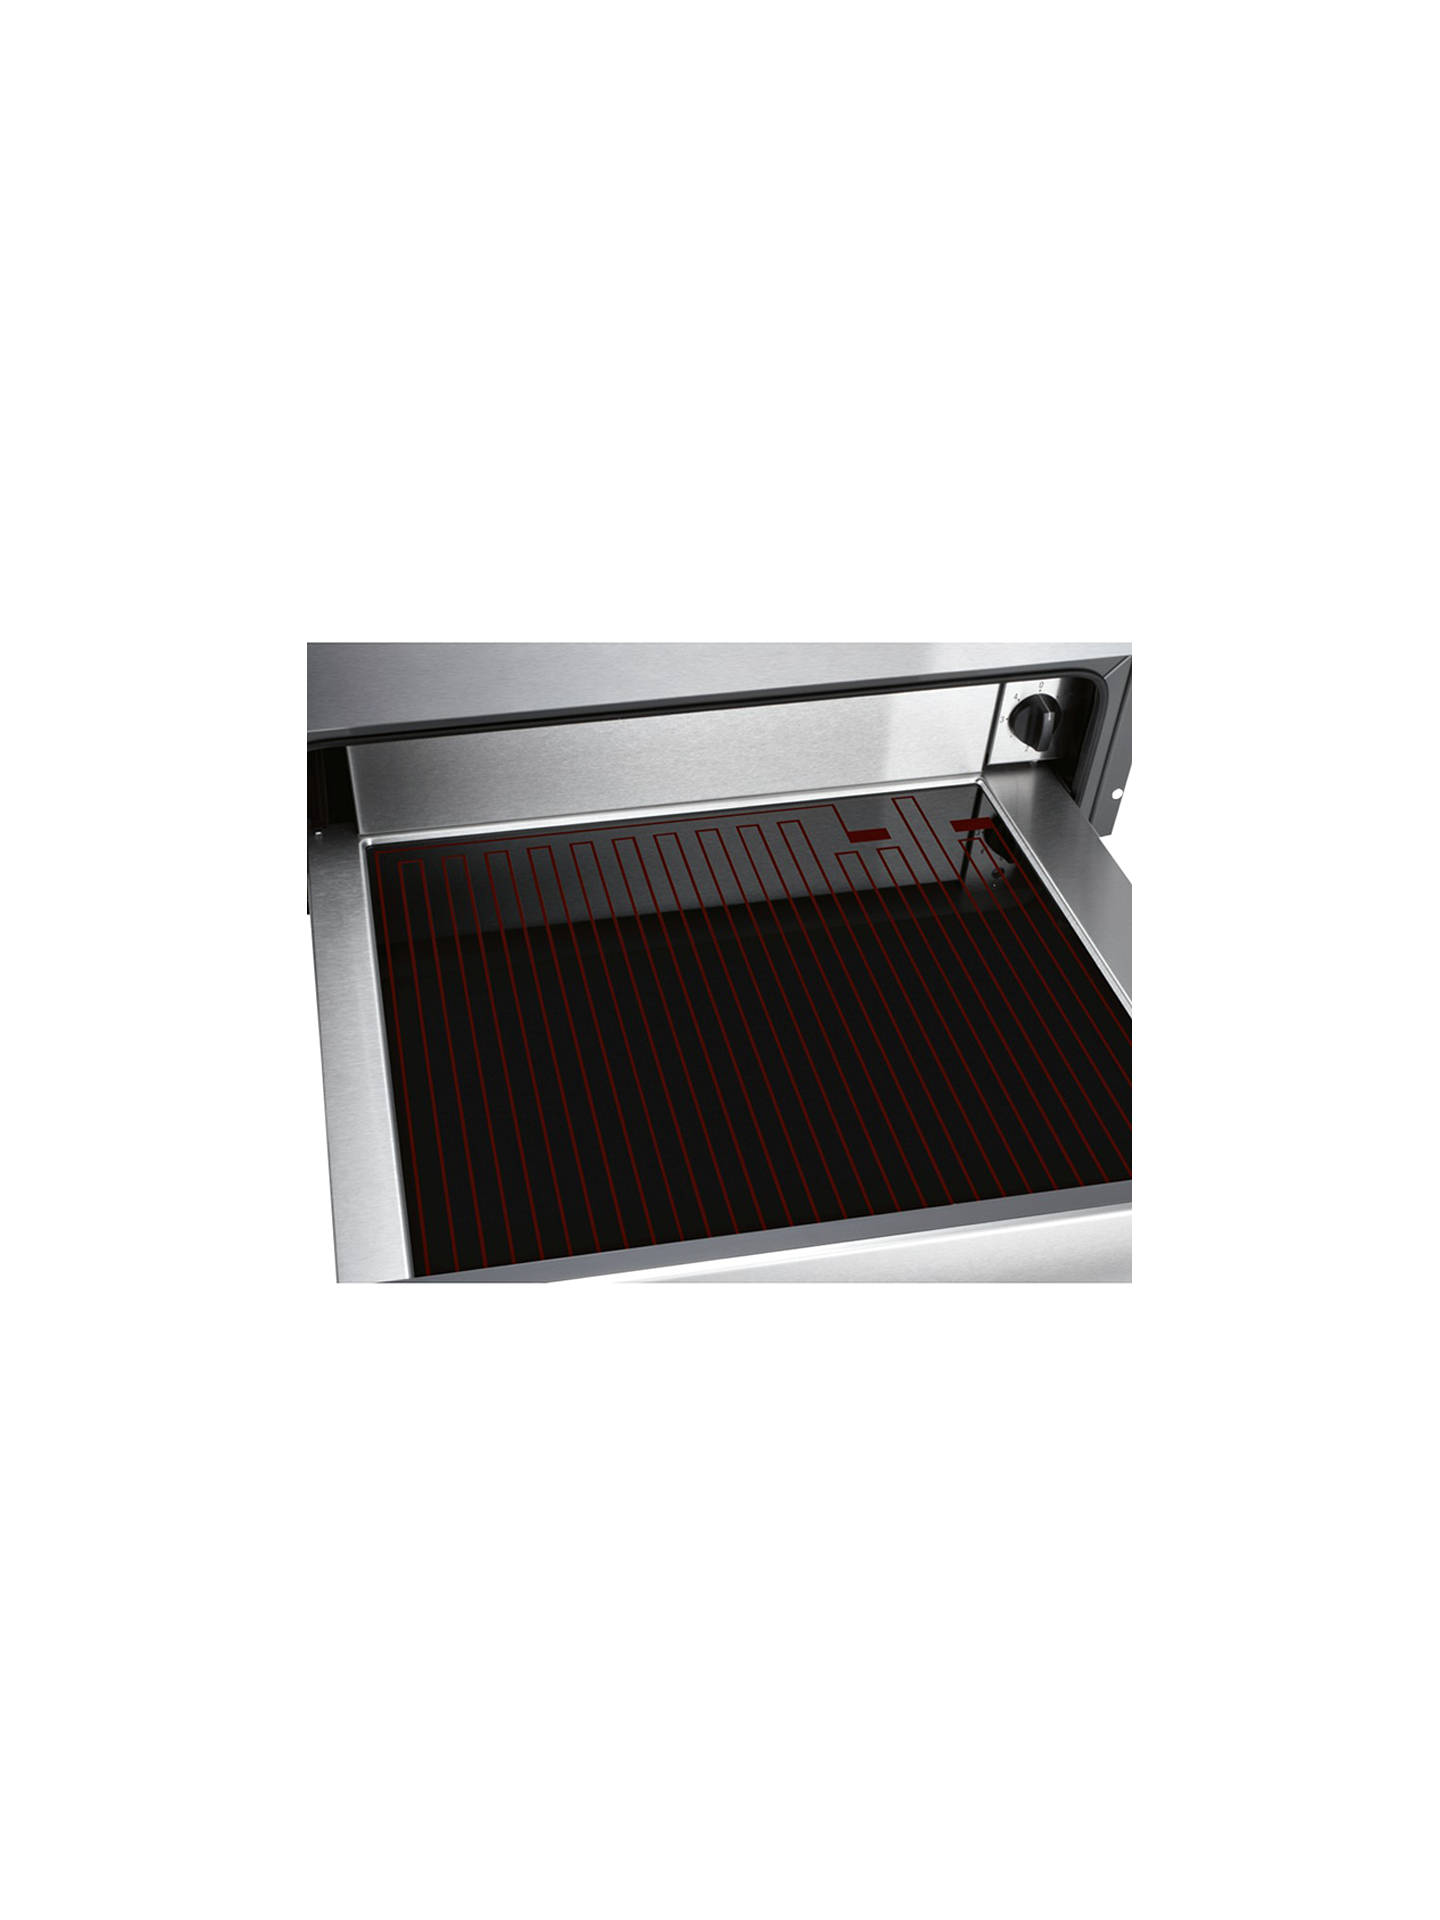 BuyNeff N17HH11N0B Warming Drawer, Stainless Steel Online at johnlewis.com